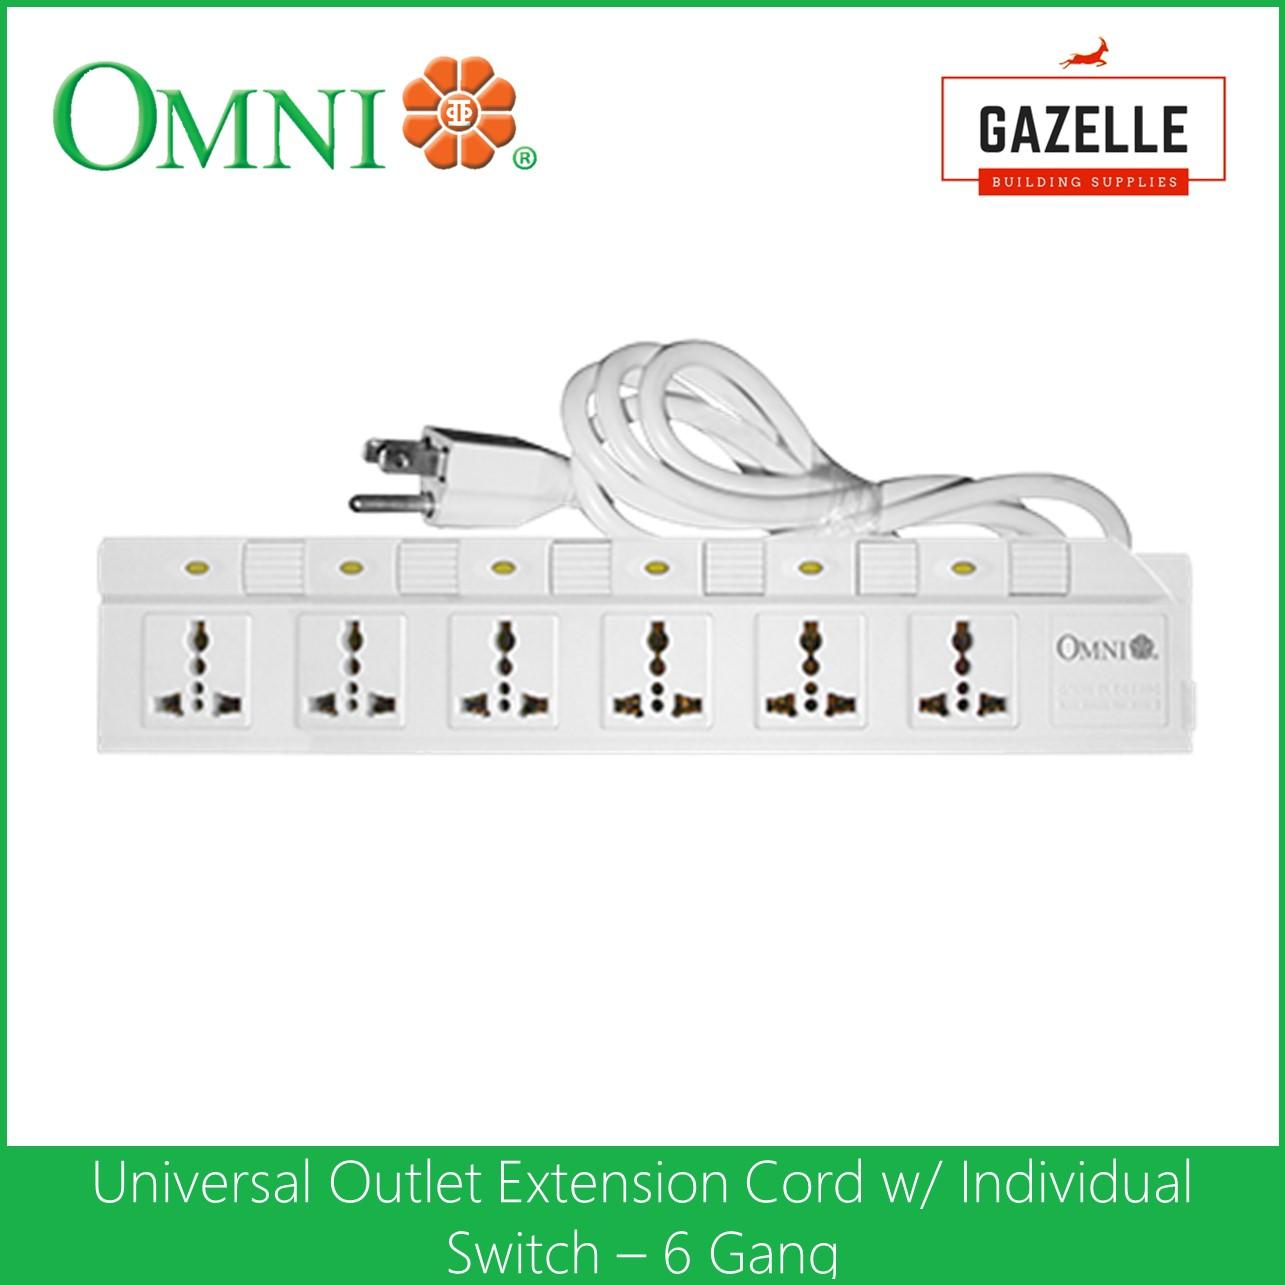 Omni Philippines Electrical Equipment For Sale Prices Handyman Usa Wiring A 3way Or 4way Switch Extension Cord Set With Individual 6 Gang Wed 360